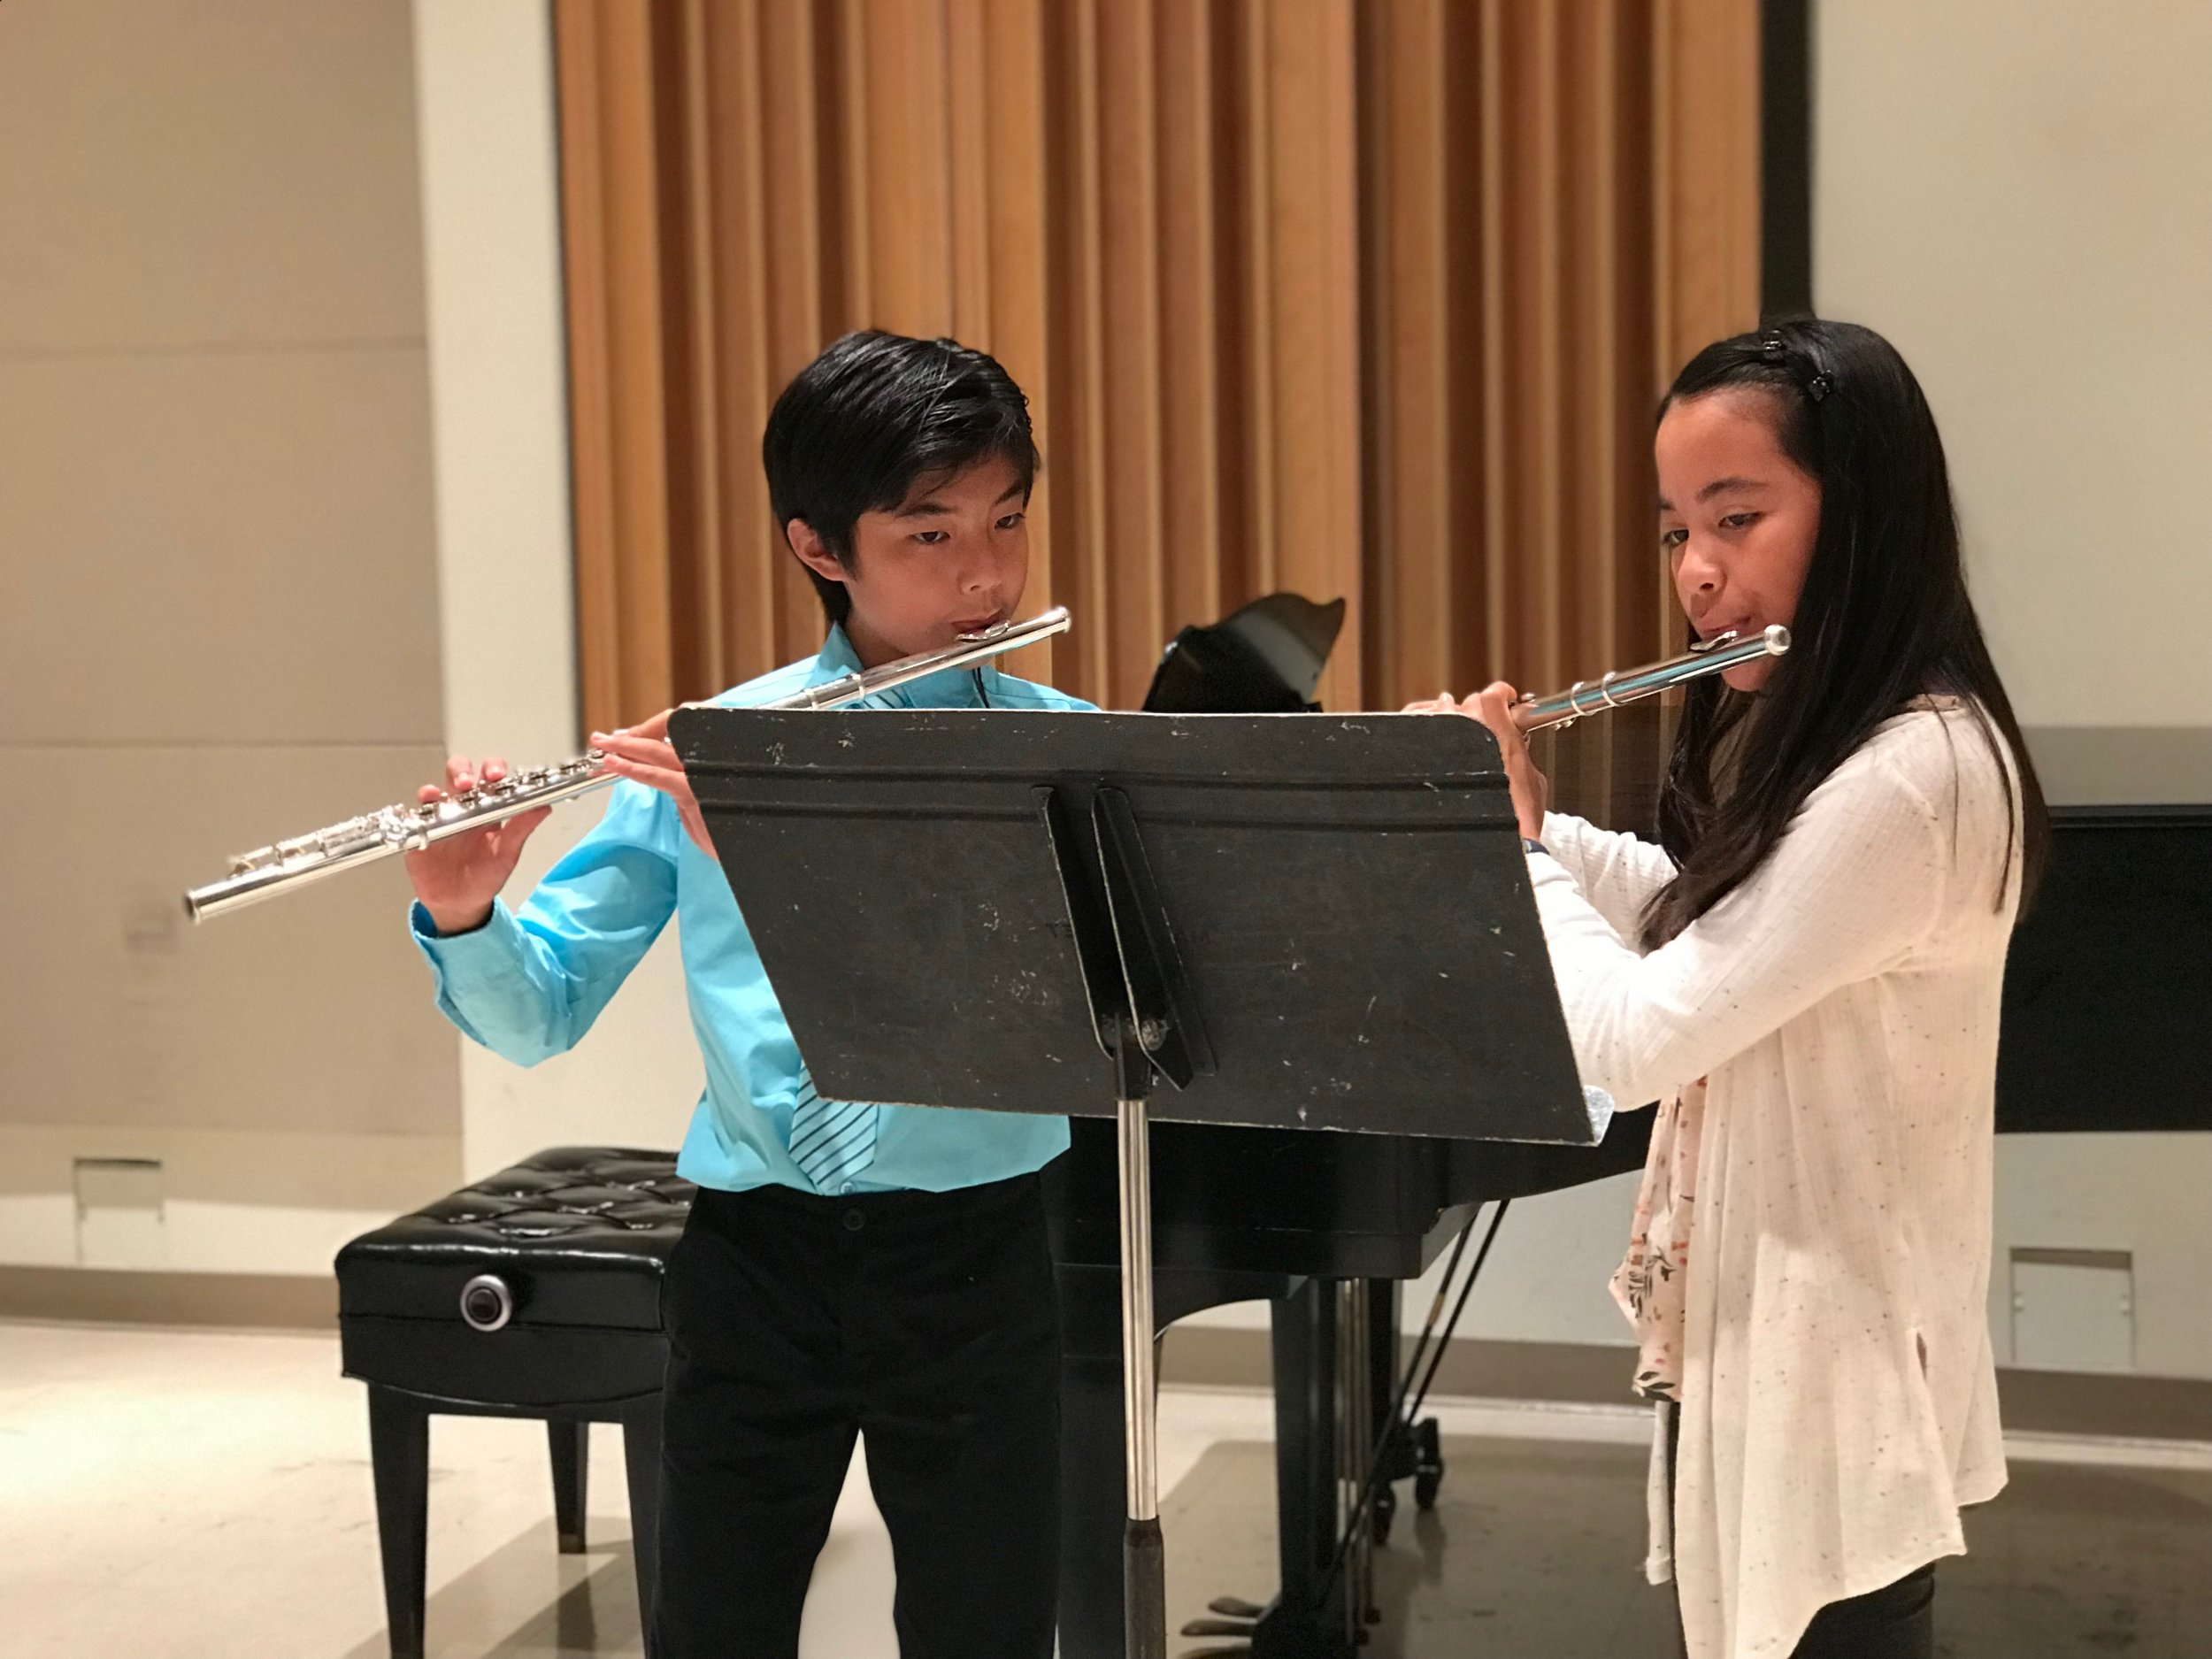 Junior Flute Ensemble - Designed for younger and less-experienced flutists, Junior Flute Ensemble builds ensemble experience and confidence in young players.